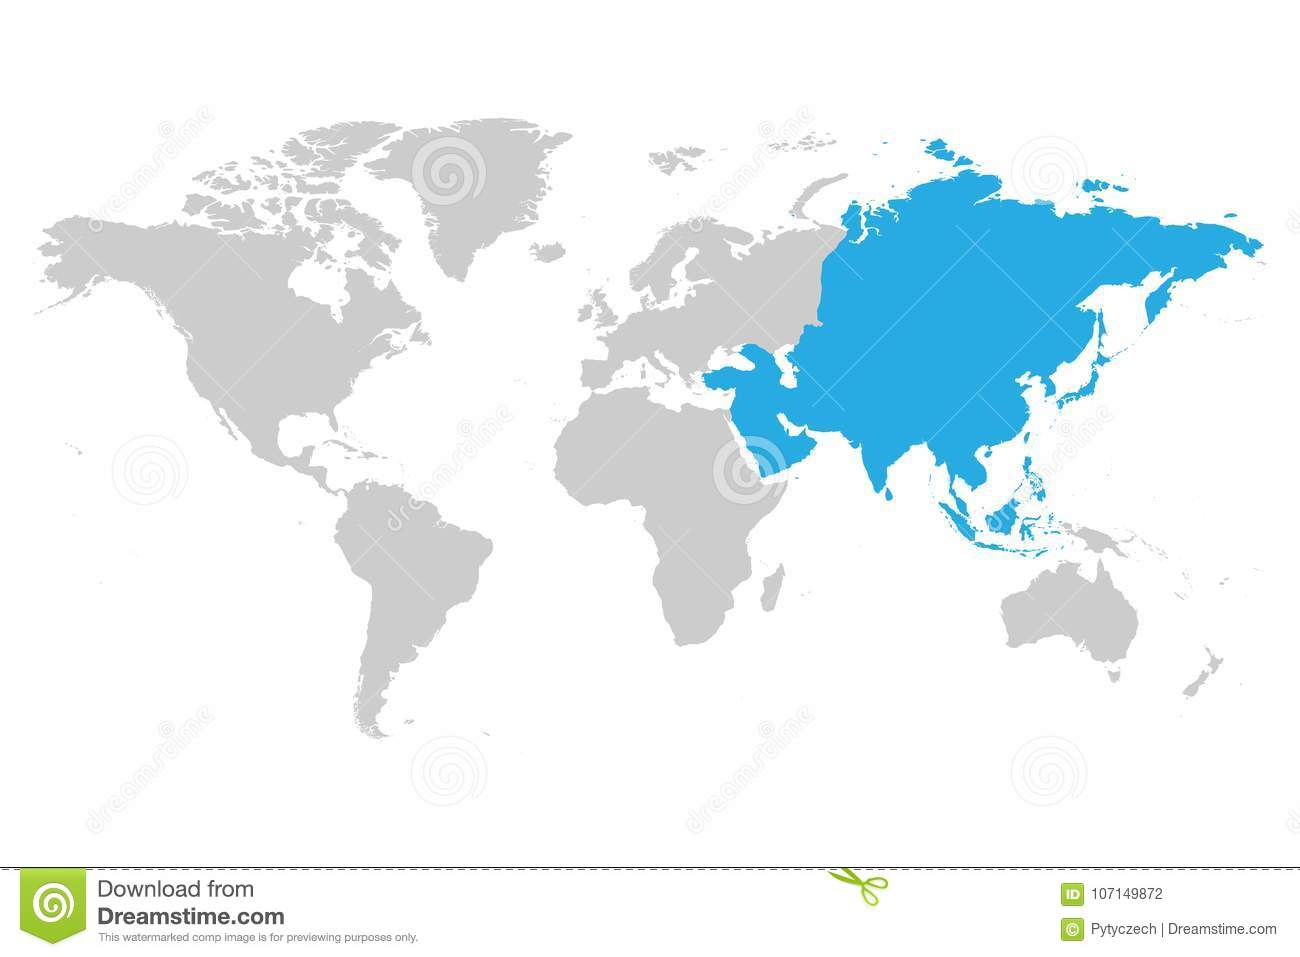 The Continent Of Asia Map.Asia Continent Blue Marked In Grey Silhouette Of World Map Stock